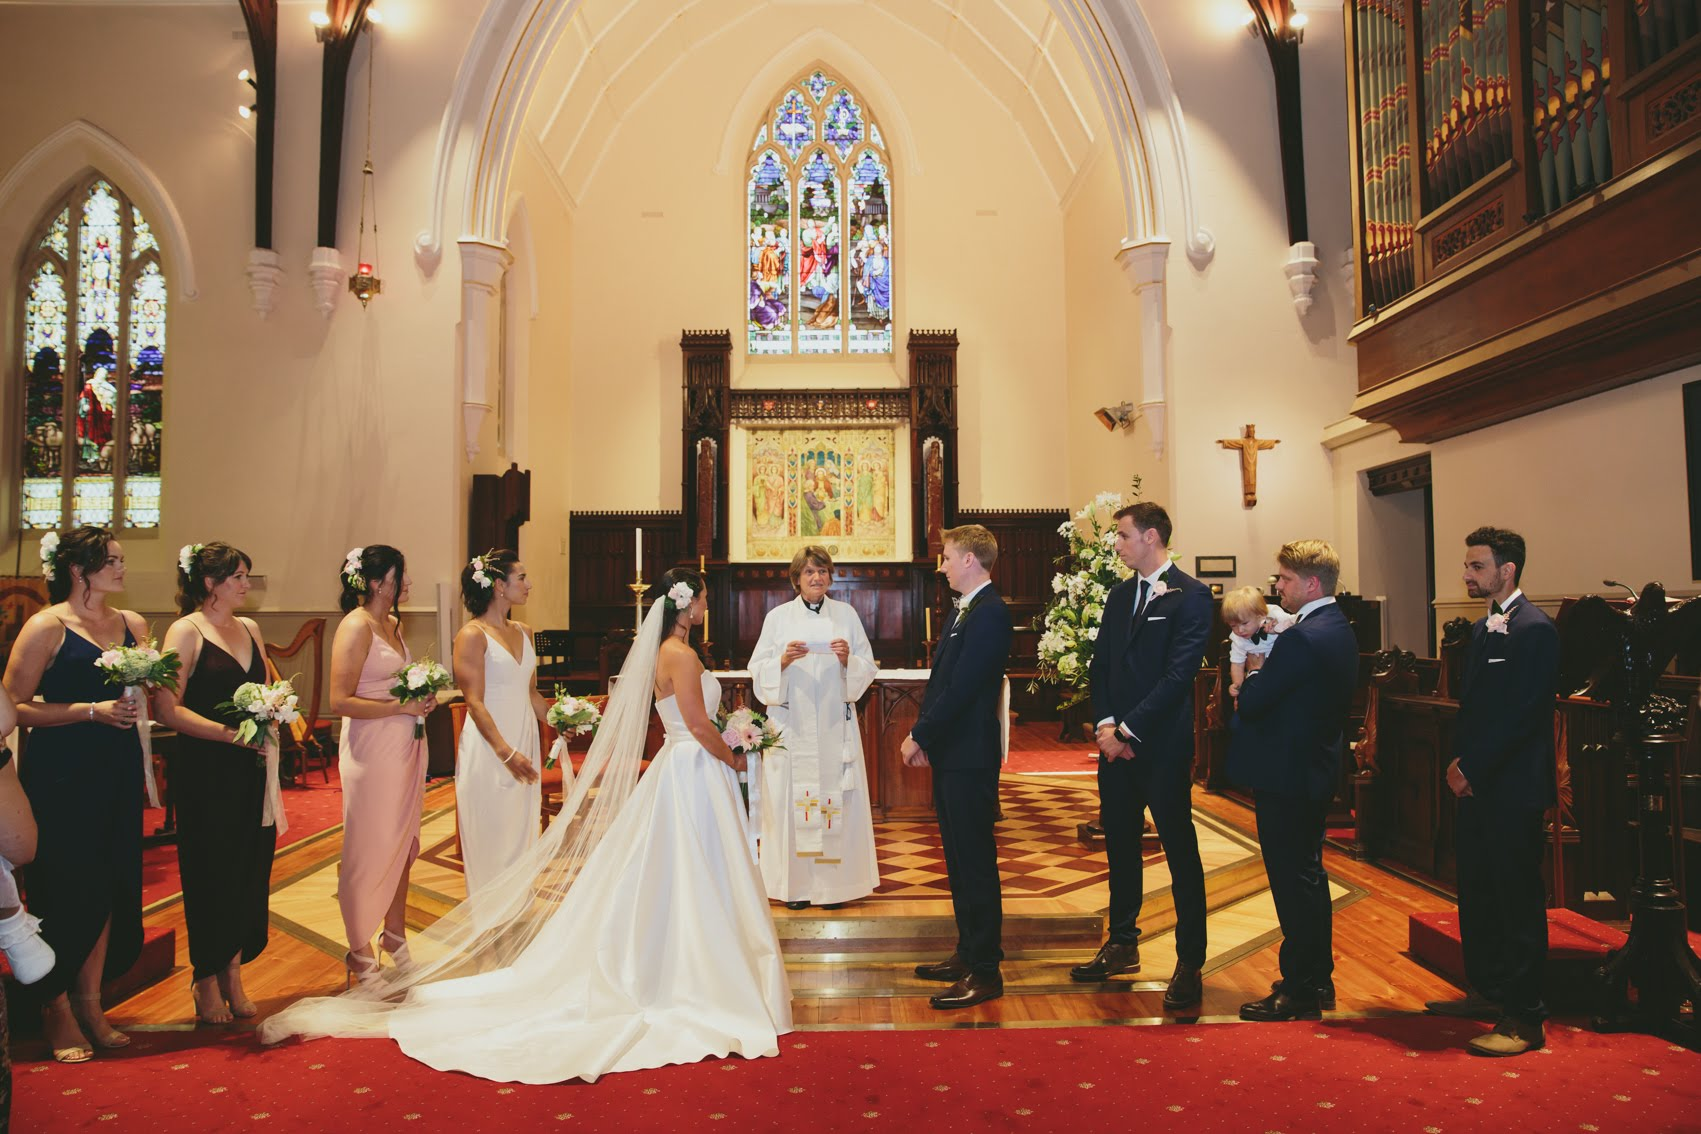 A recent wedding conducted in the beautiful, recently refurbished Cathedral in the heart of Bendigo.